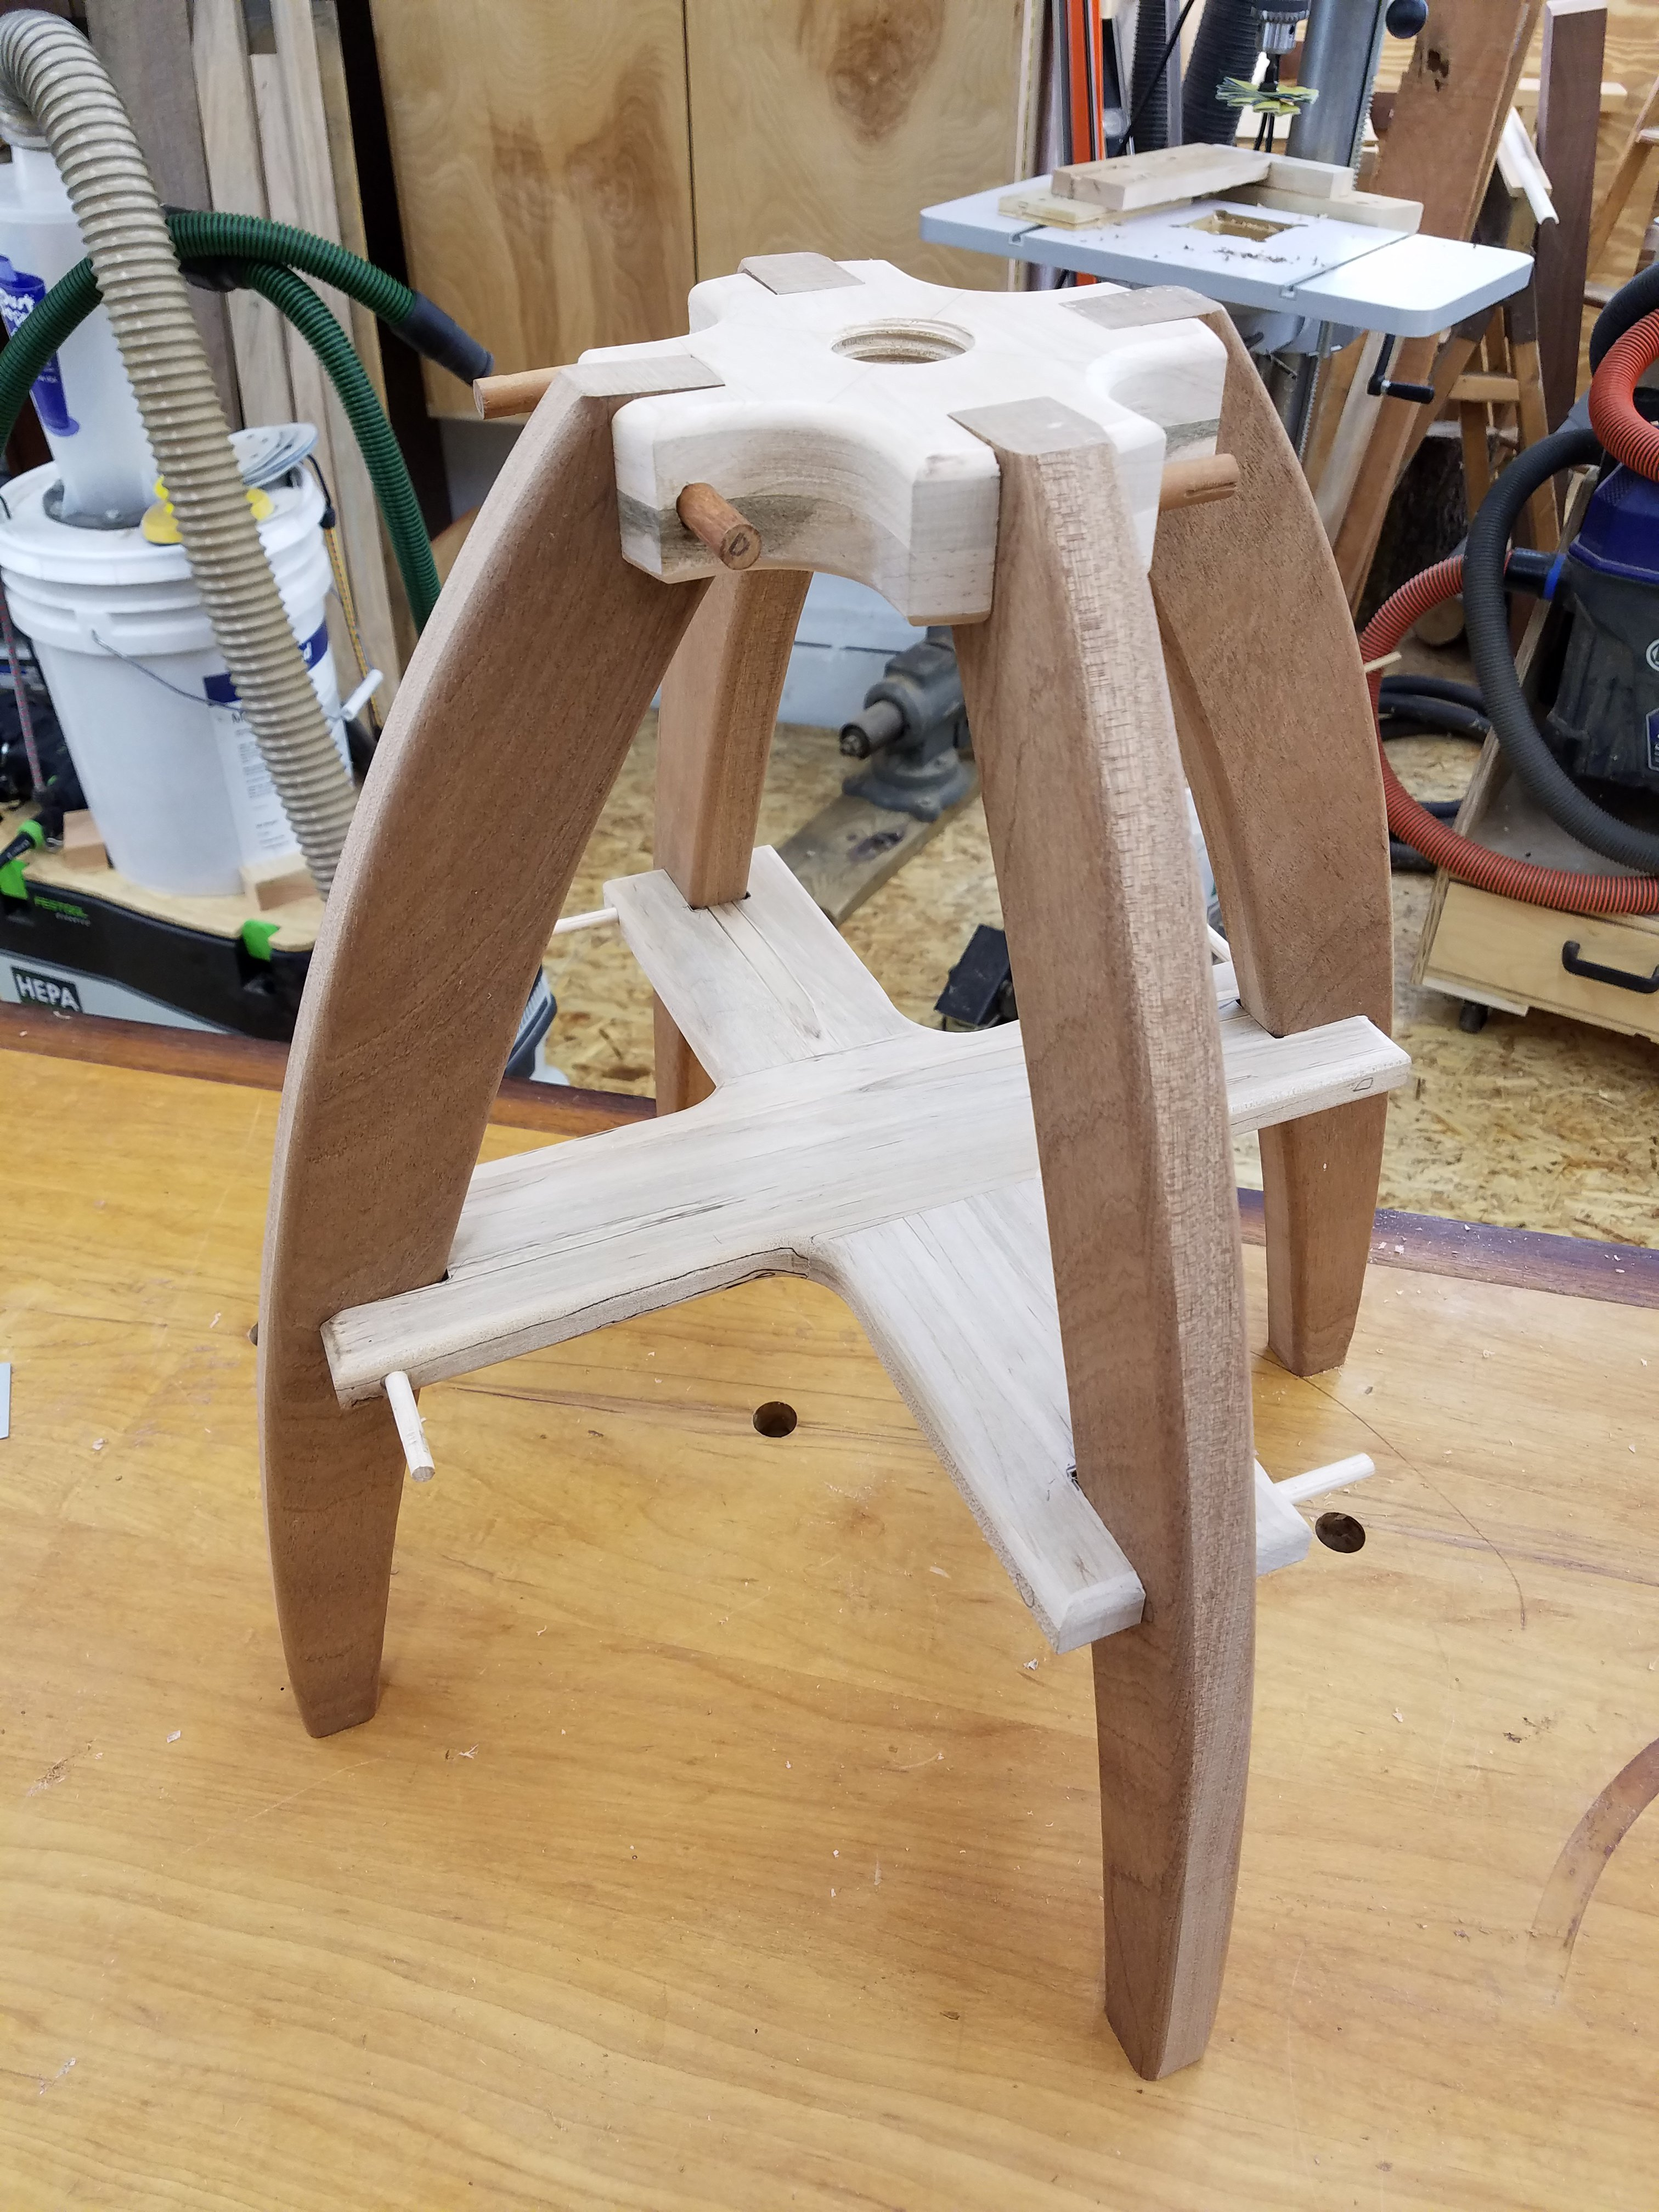 Shop Stool Project Feb 2020